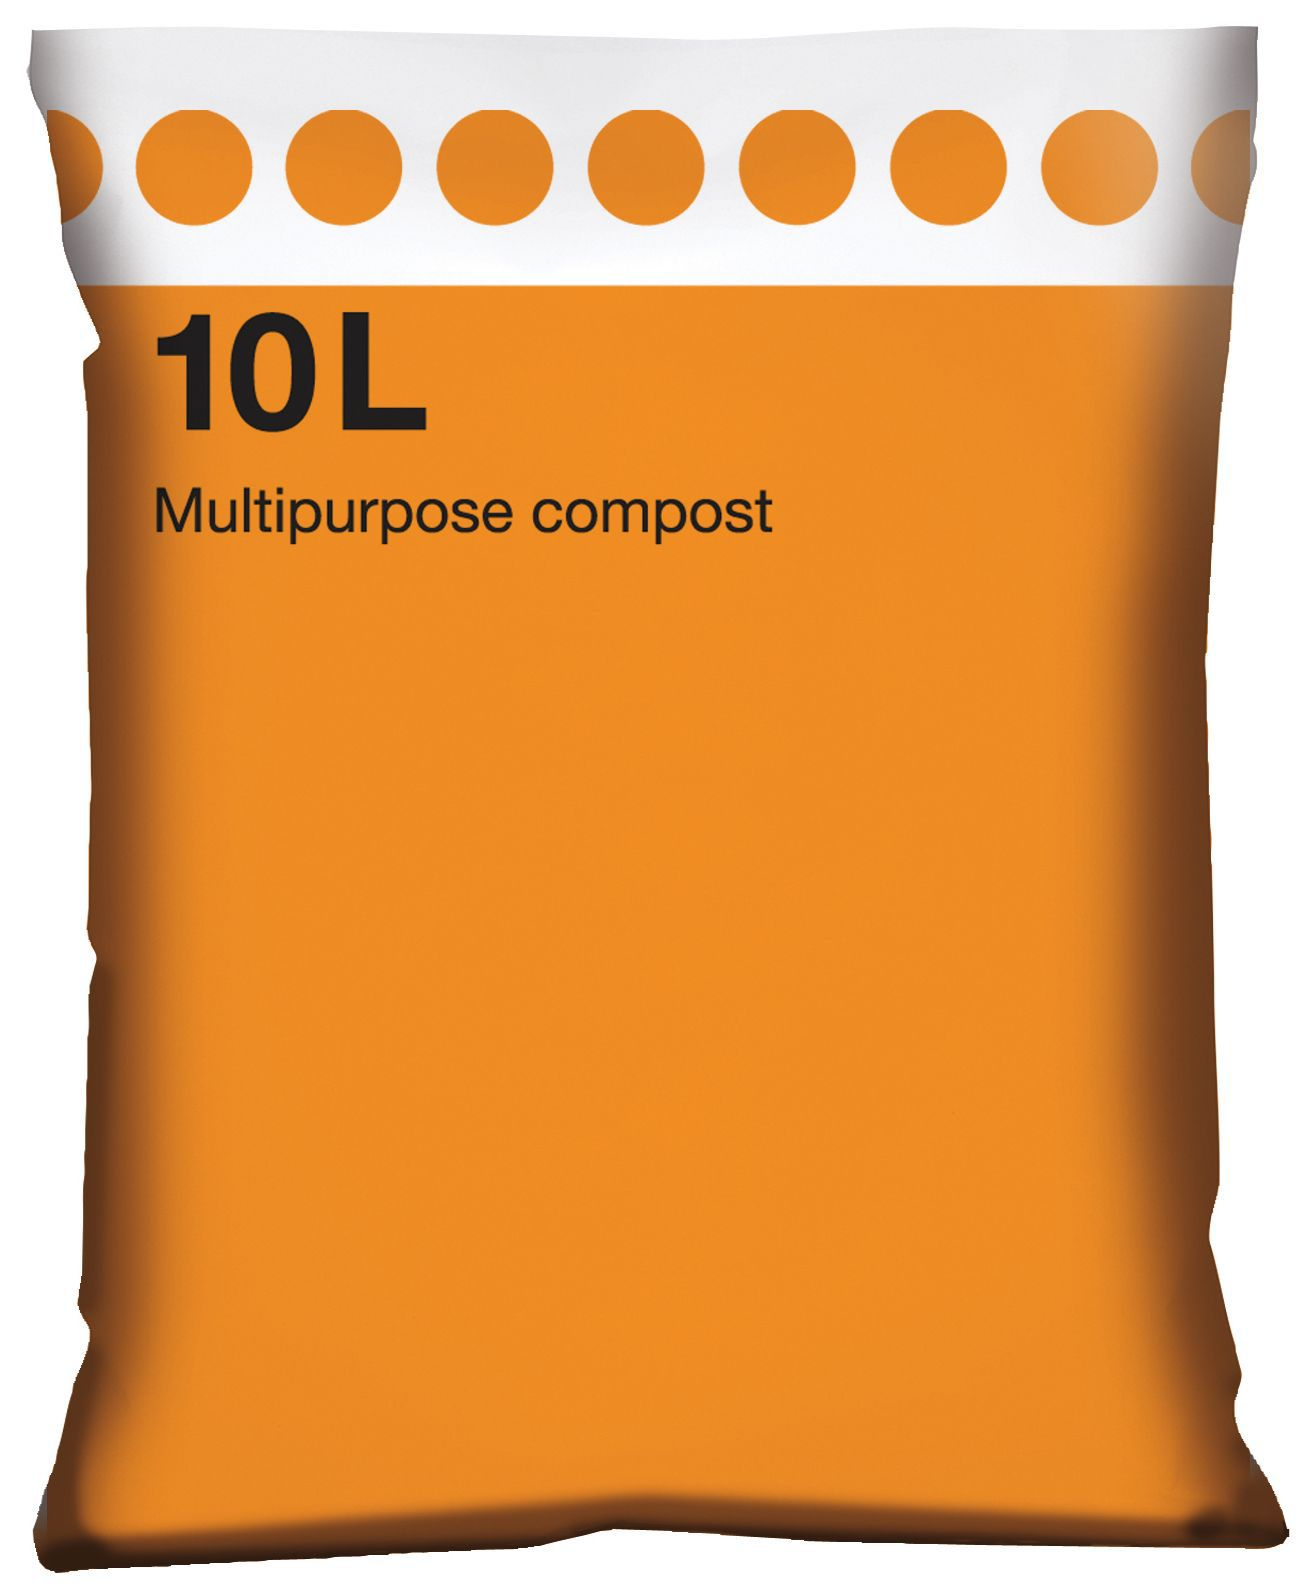 Image for westland multi purpose compost with john innes 50l from - Image For Westland Multi Purpose Compost With John Innes 50l From 48